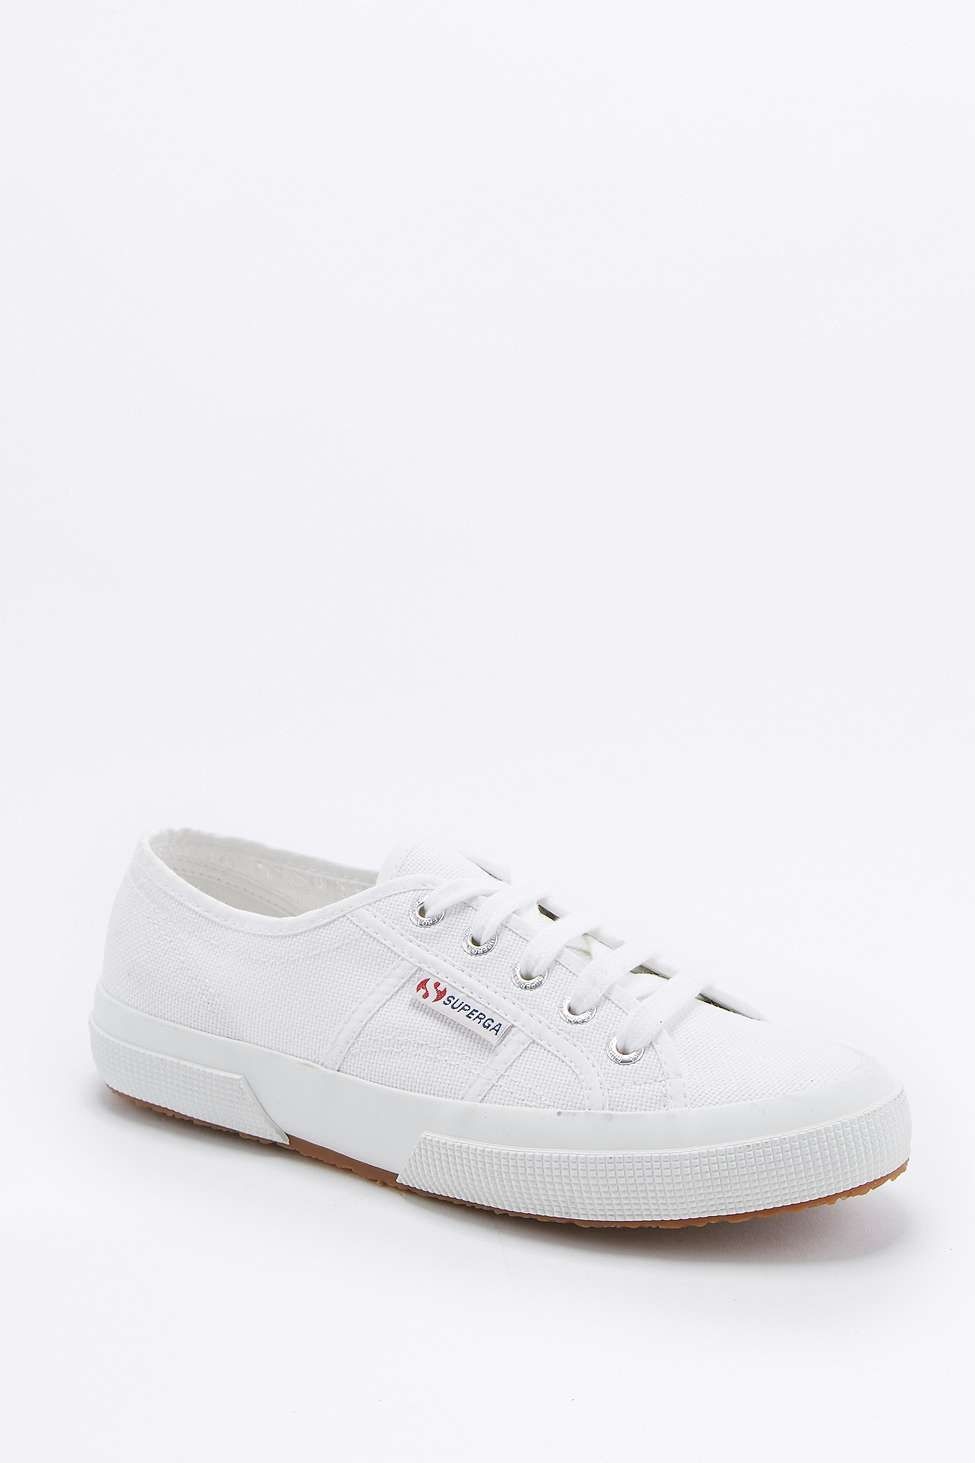 Chaussures Superga 1705 blanches Fashion homme MaWY93